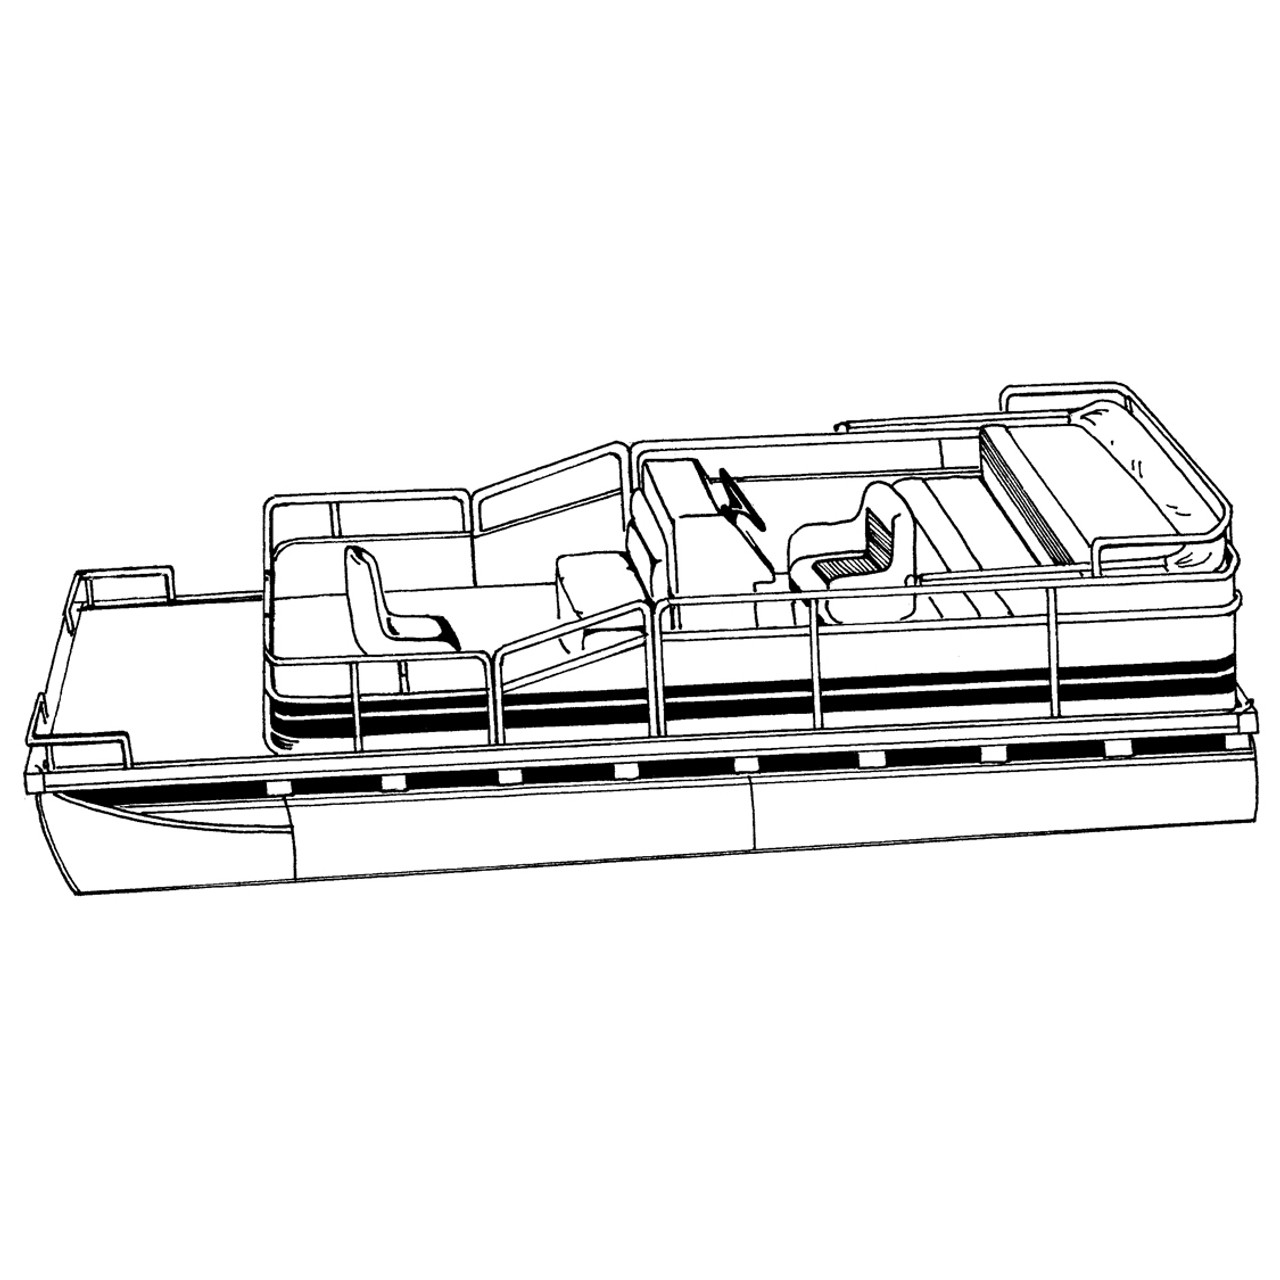 hight resolution of cover fits pontoon with bimini top and rails that partially enclose deck leaving 1